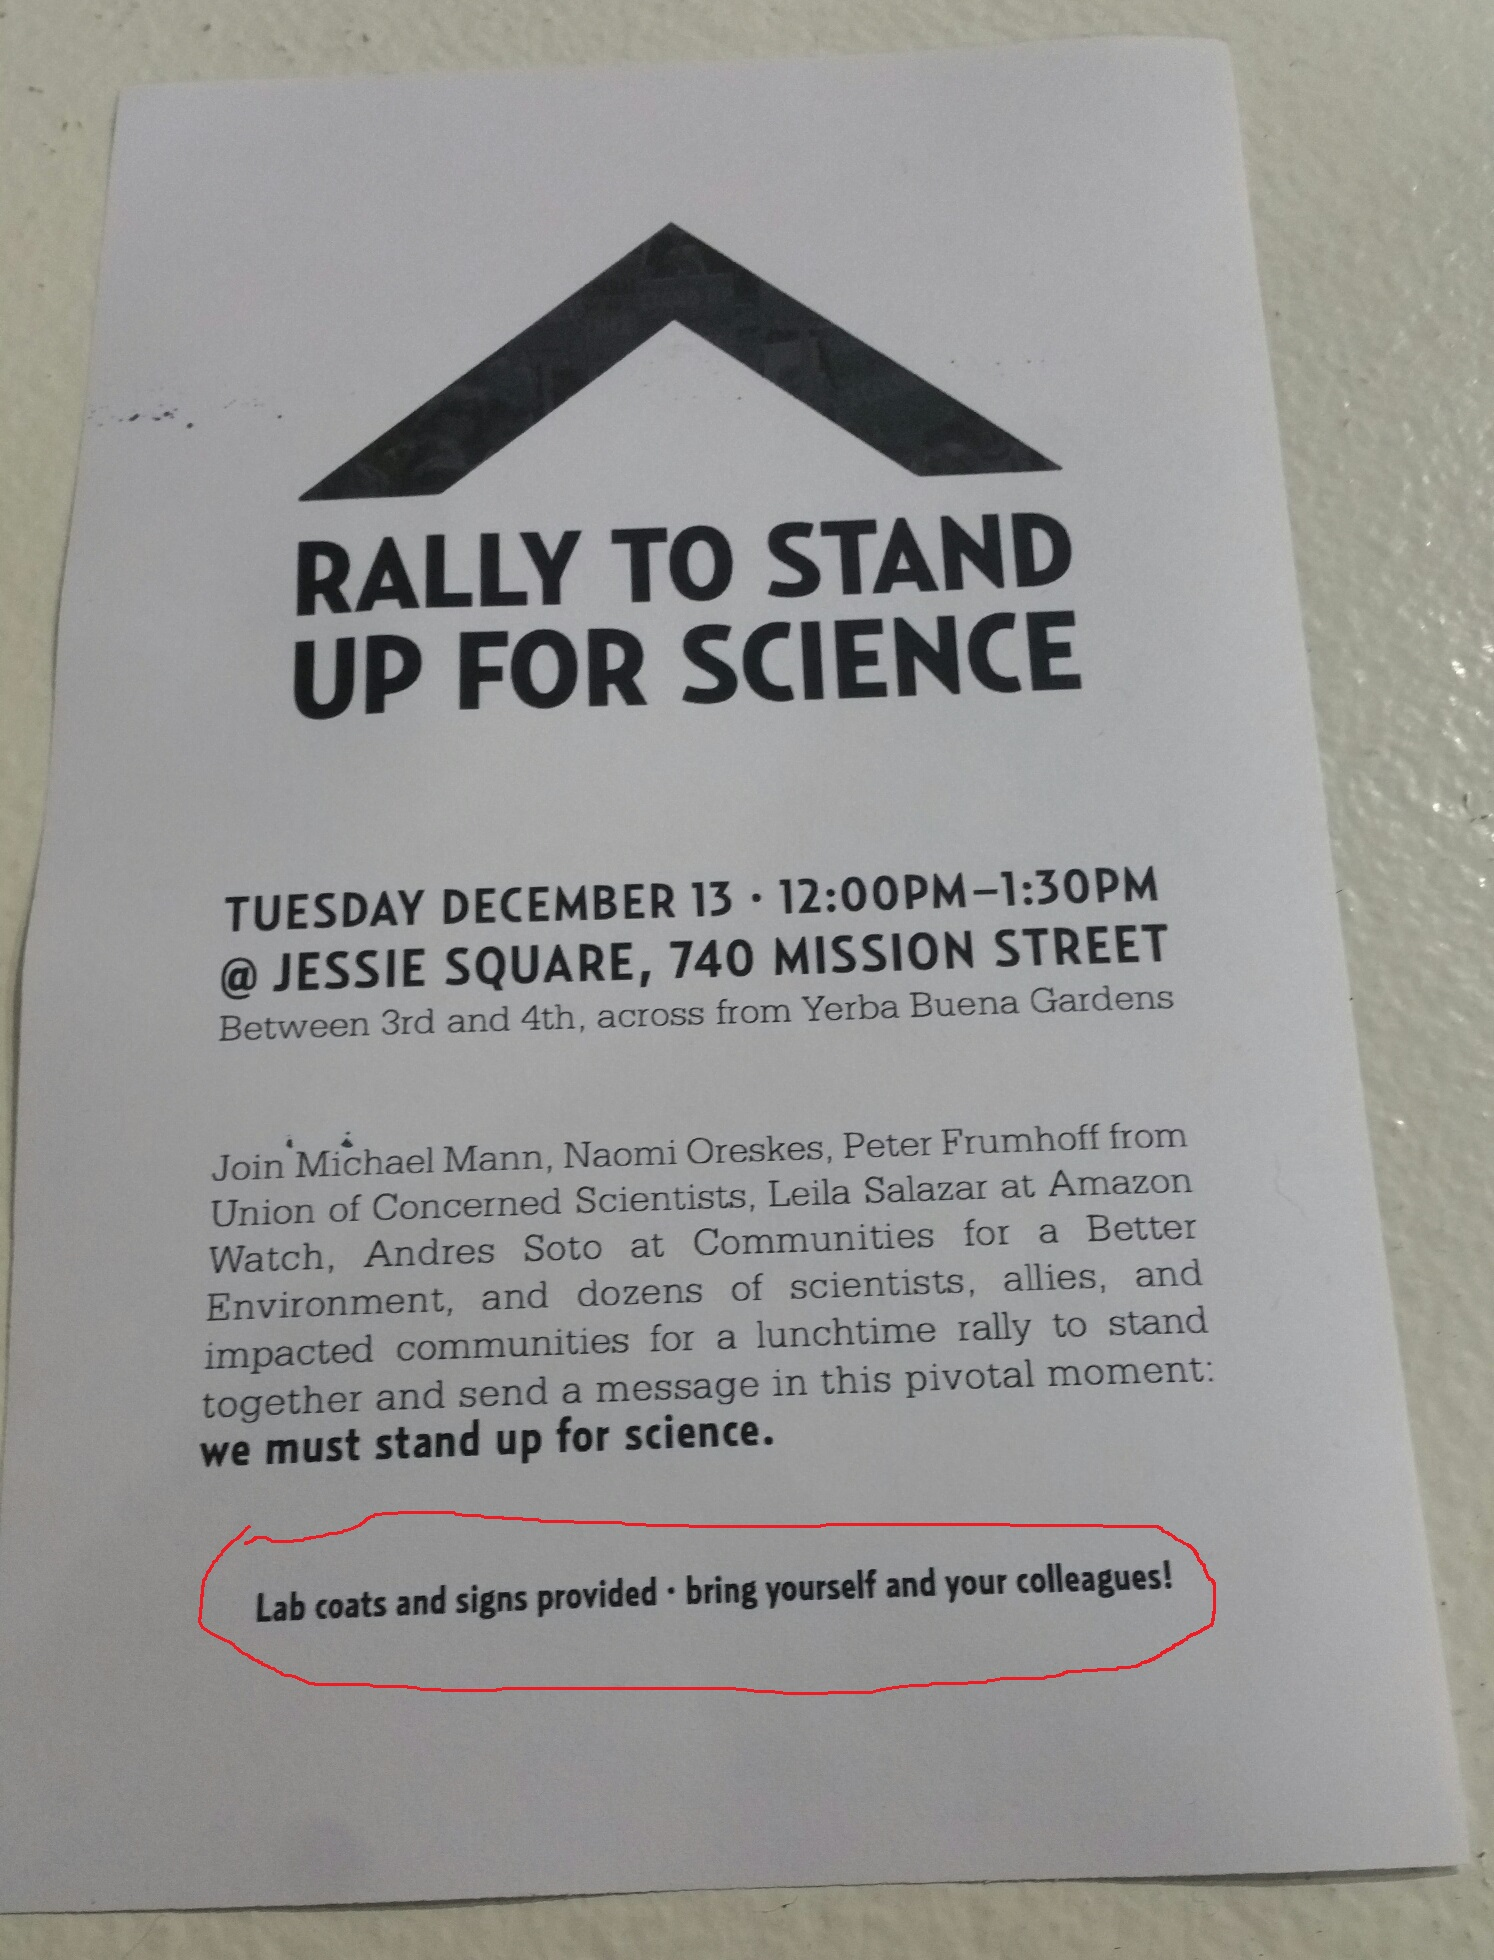 A poster advertising the rally and promising to provide lab coats and signs